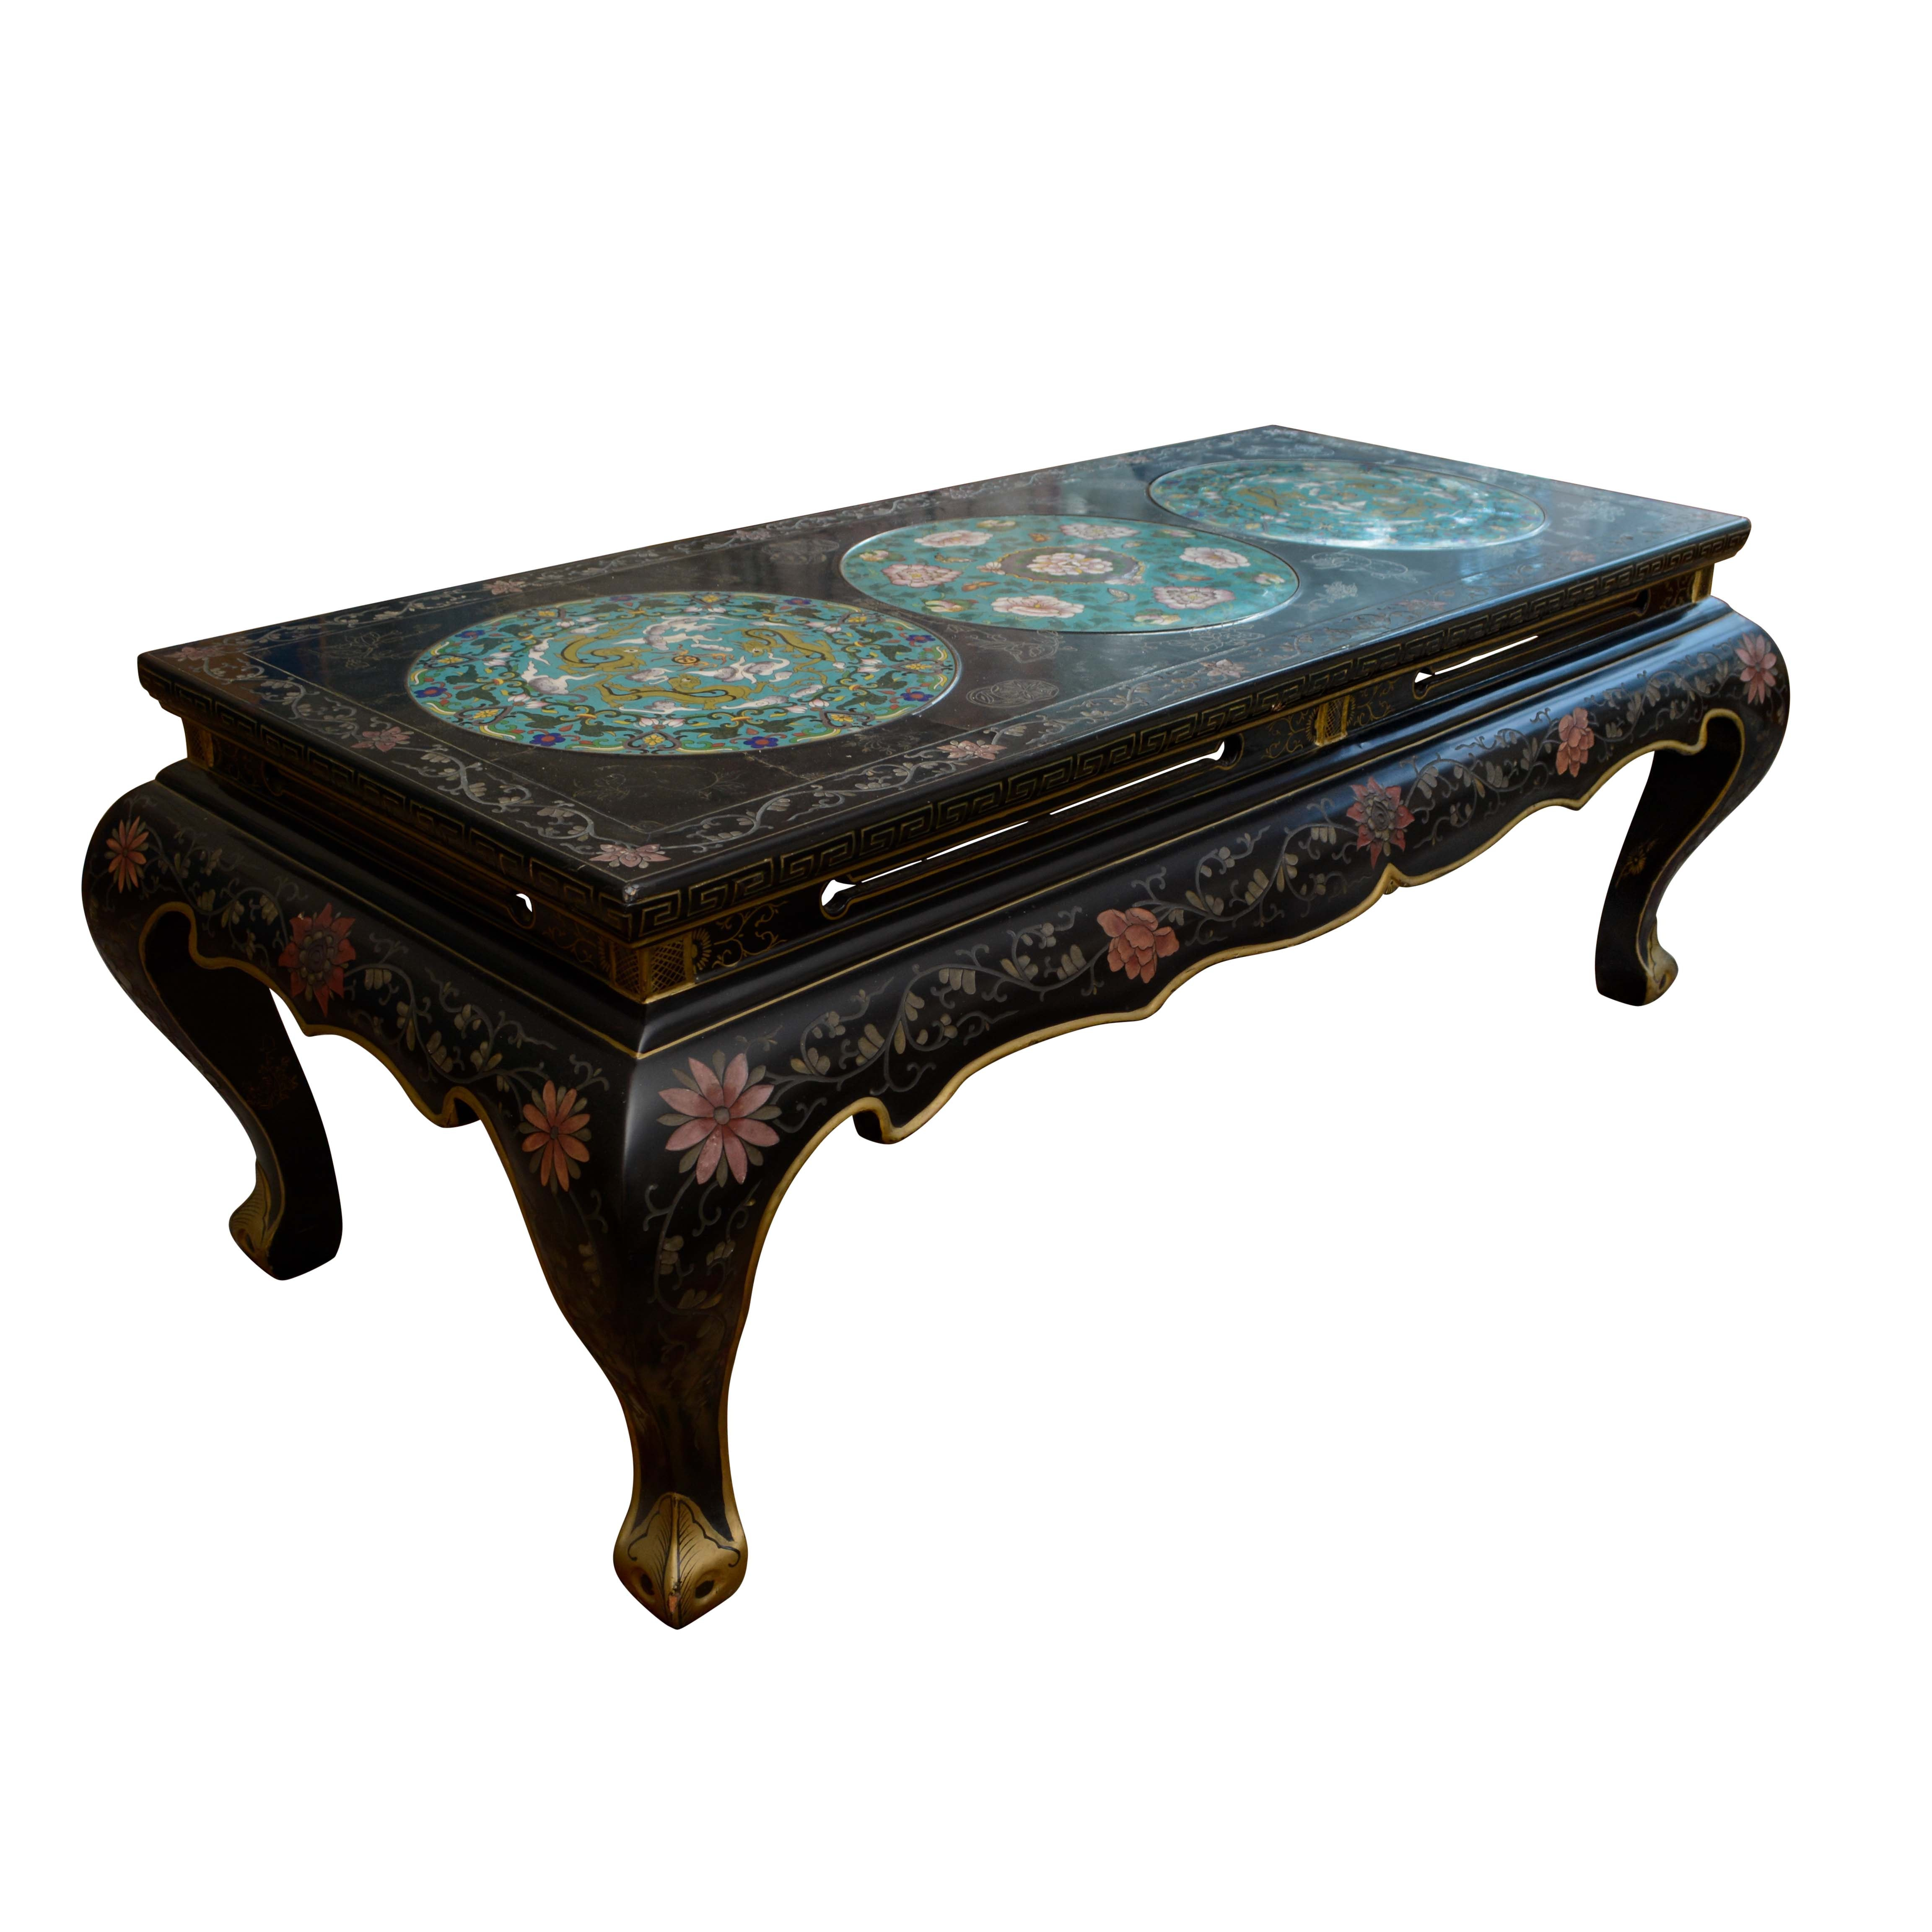 Vintage Chinese Cloisonne and Coromandel Lacquer Coffee Table